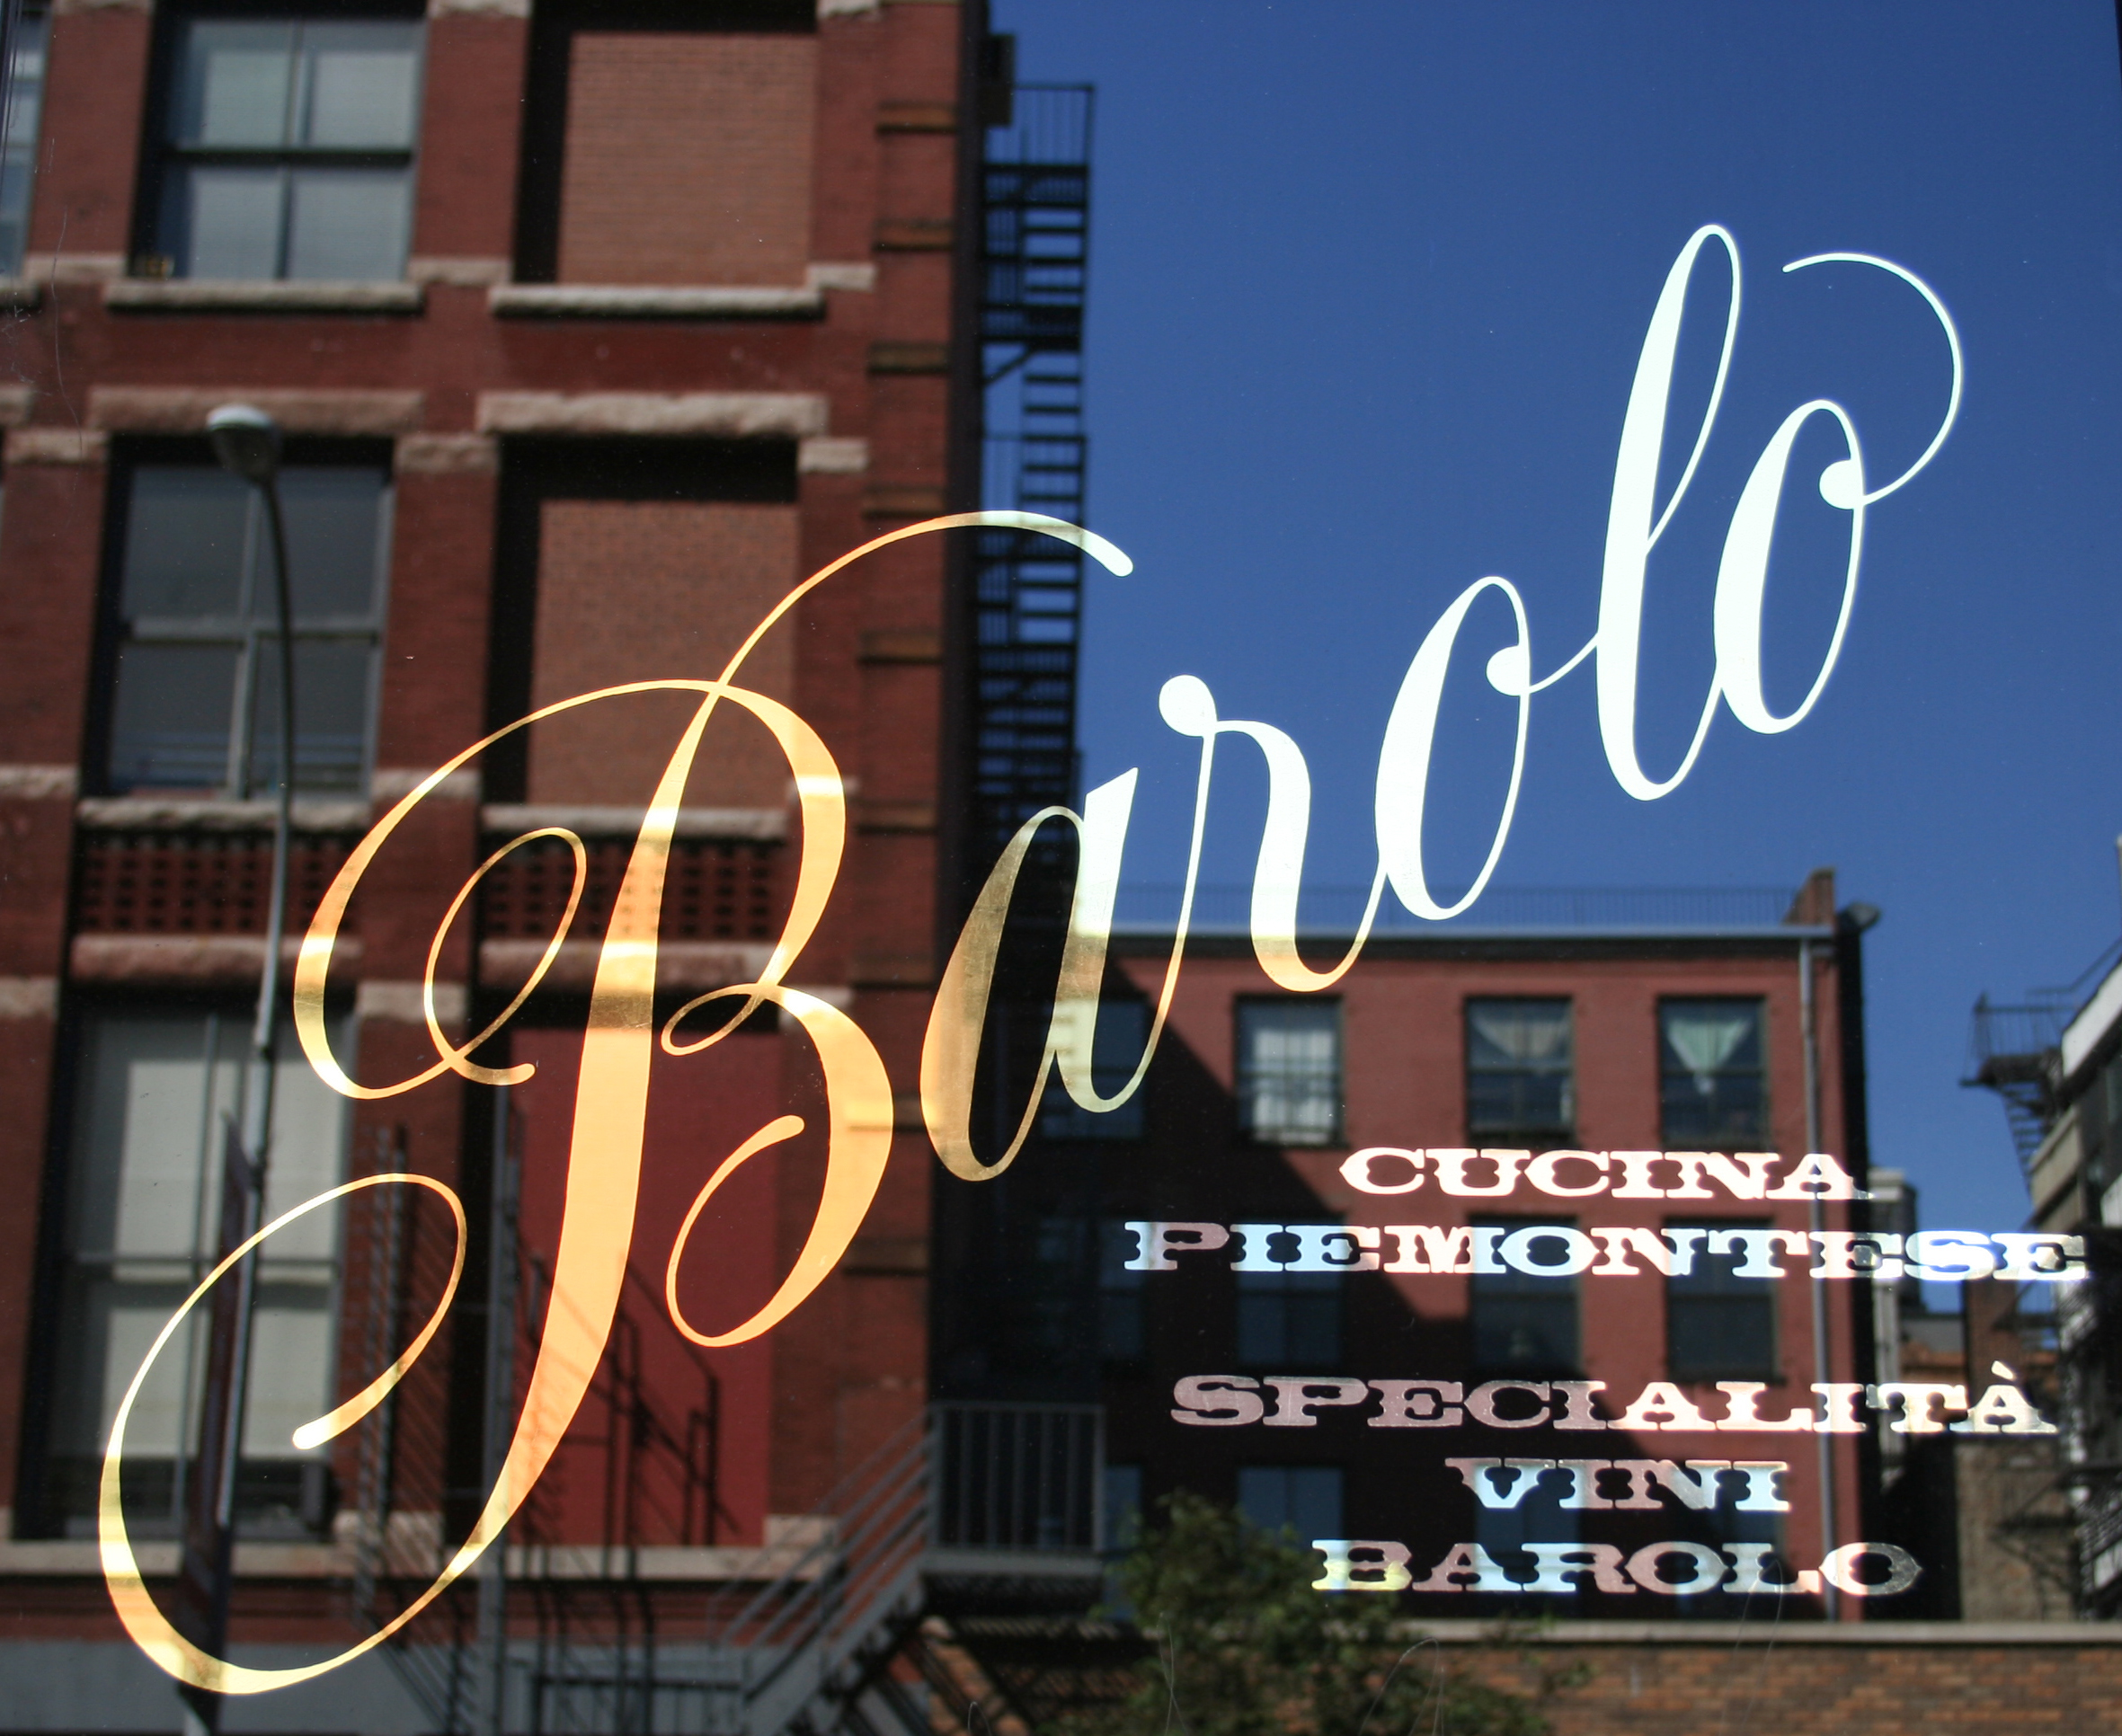 Barolo (1989). Detail of restaurant signage.